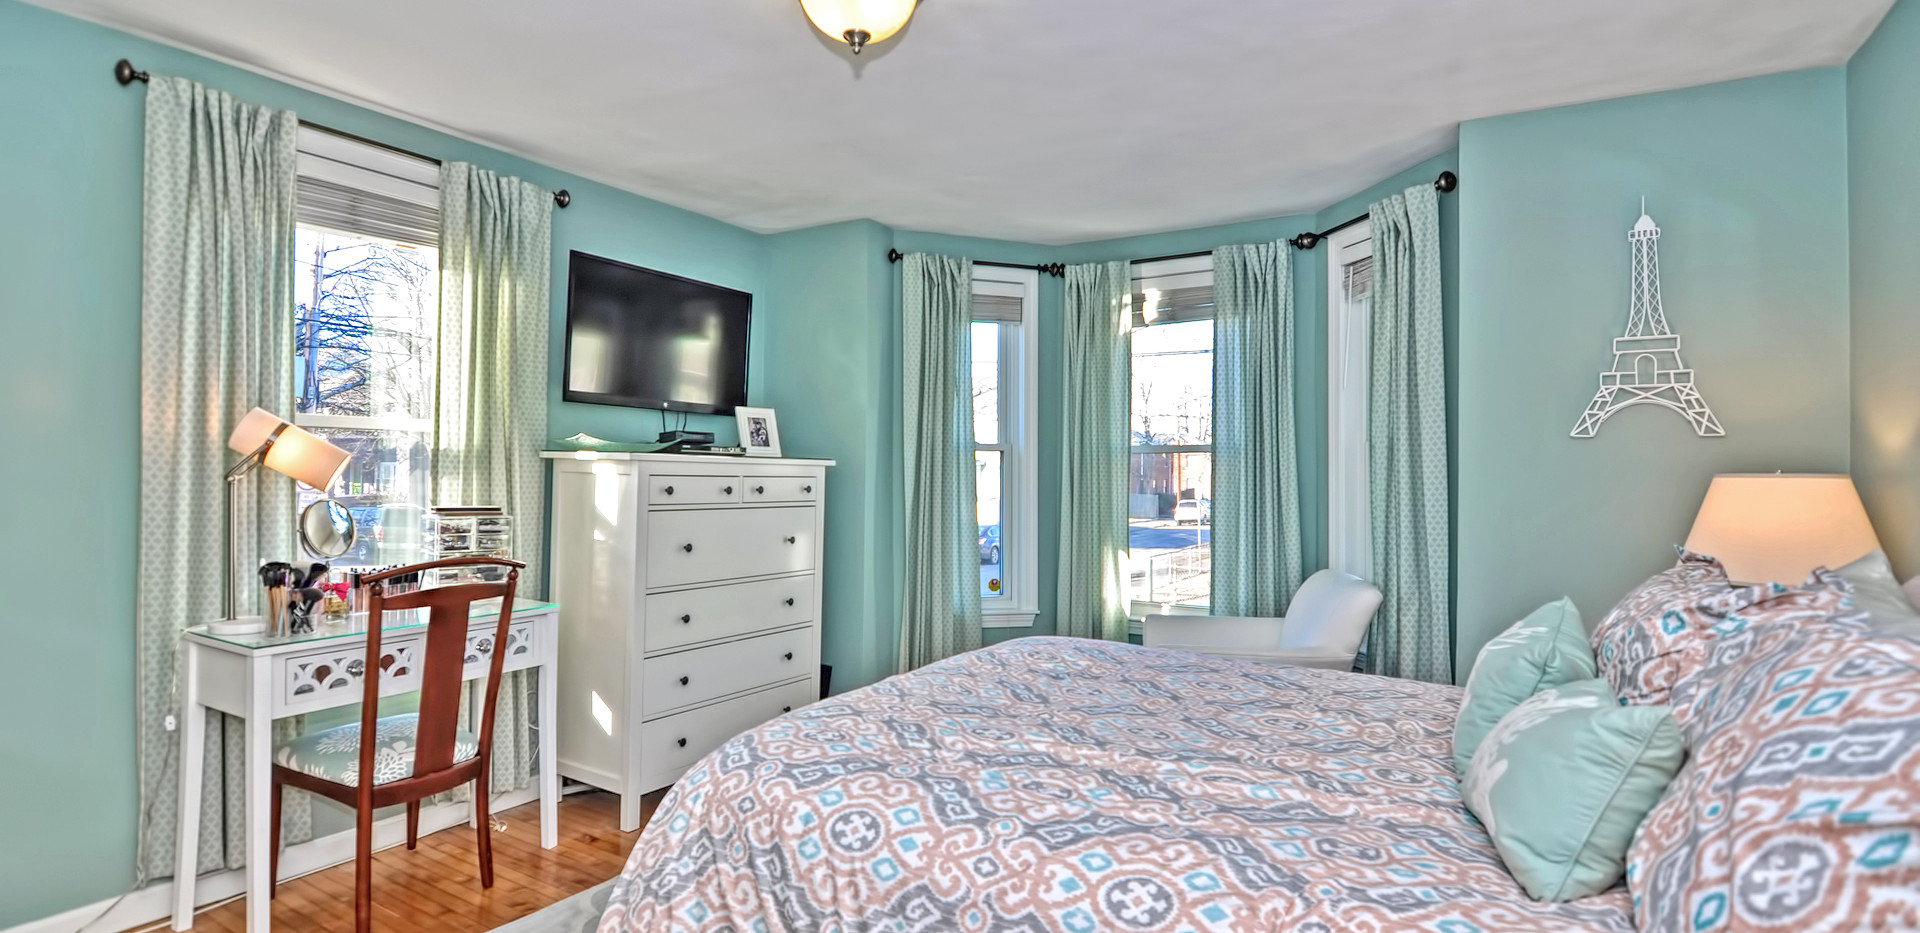 93 Taylor Street - Unit 2 - Waltham MA - Front Bedroom - The Madden Team at Berkshire Hathaway Commonwealth Real Estate - Condo for Sale